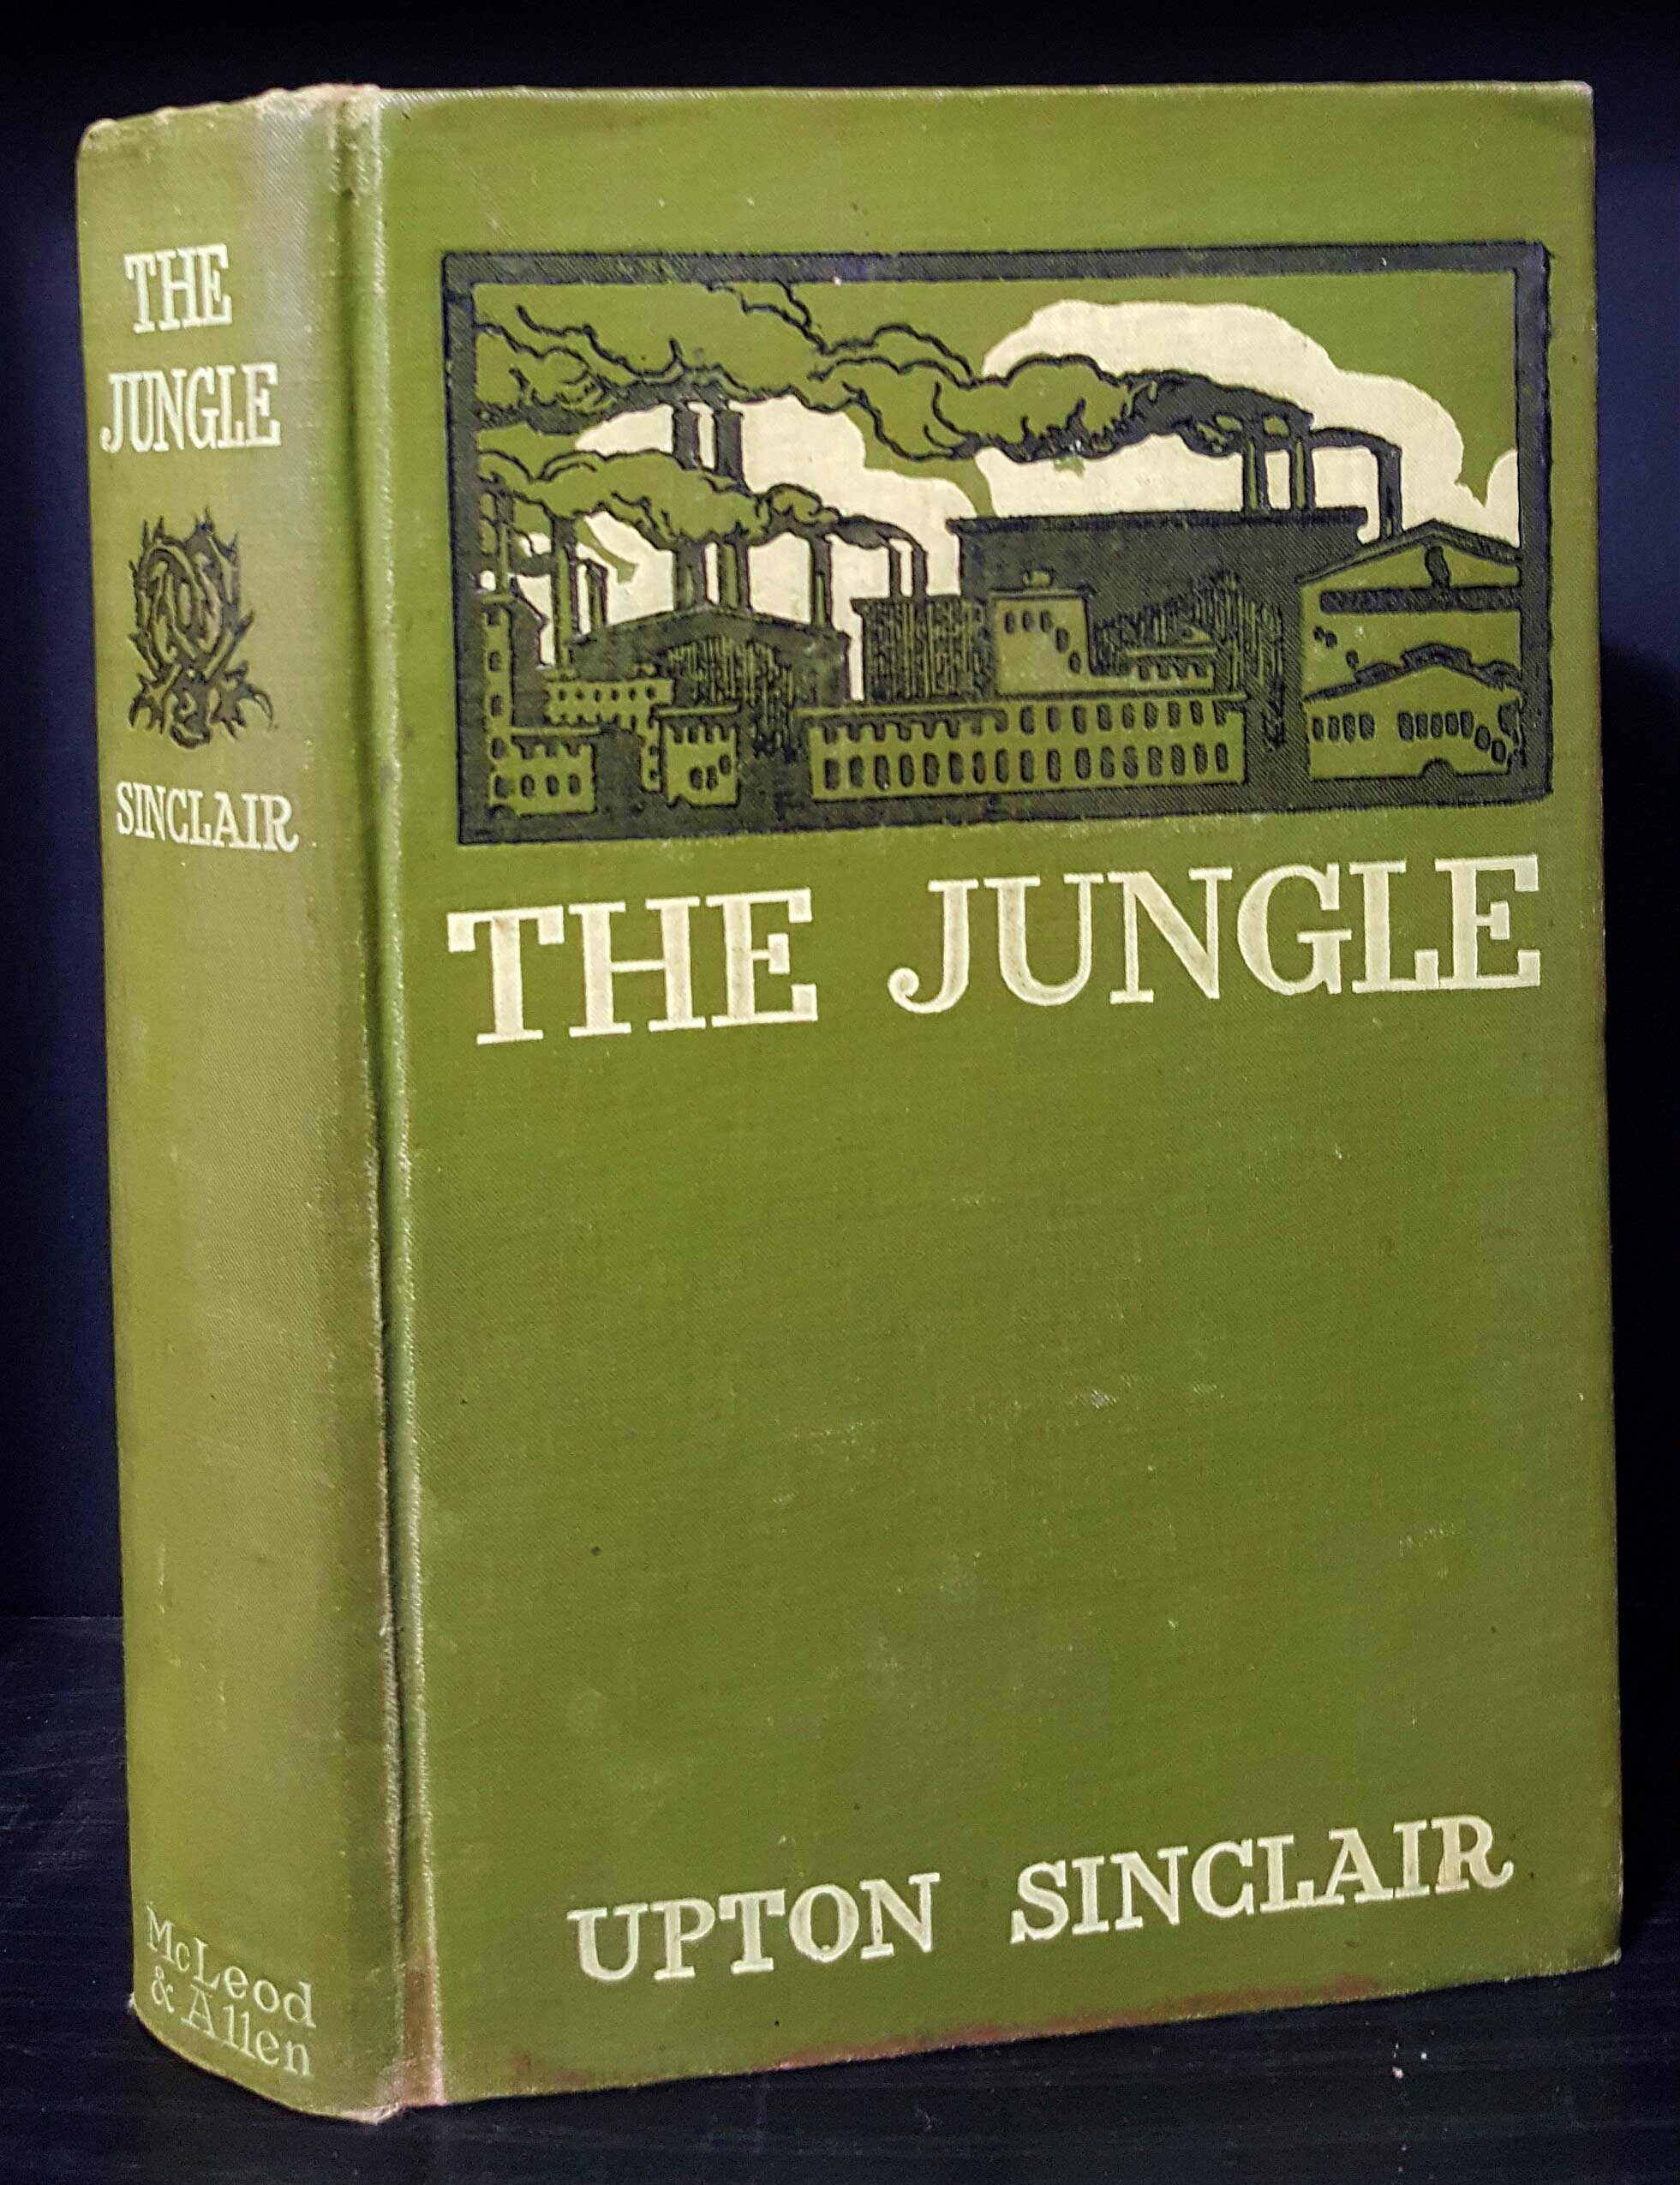 003 Essay Example The Jungle Upton Sinclair Book Rare Review Full